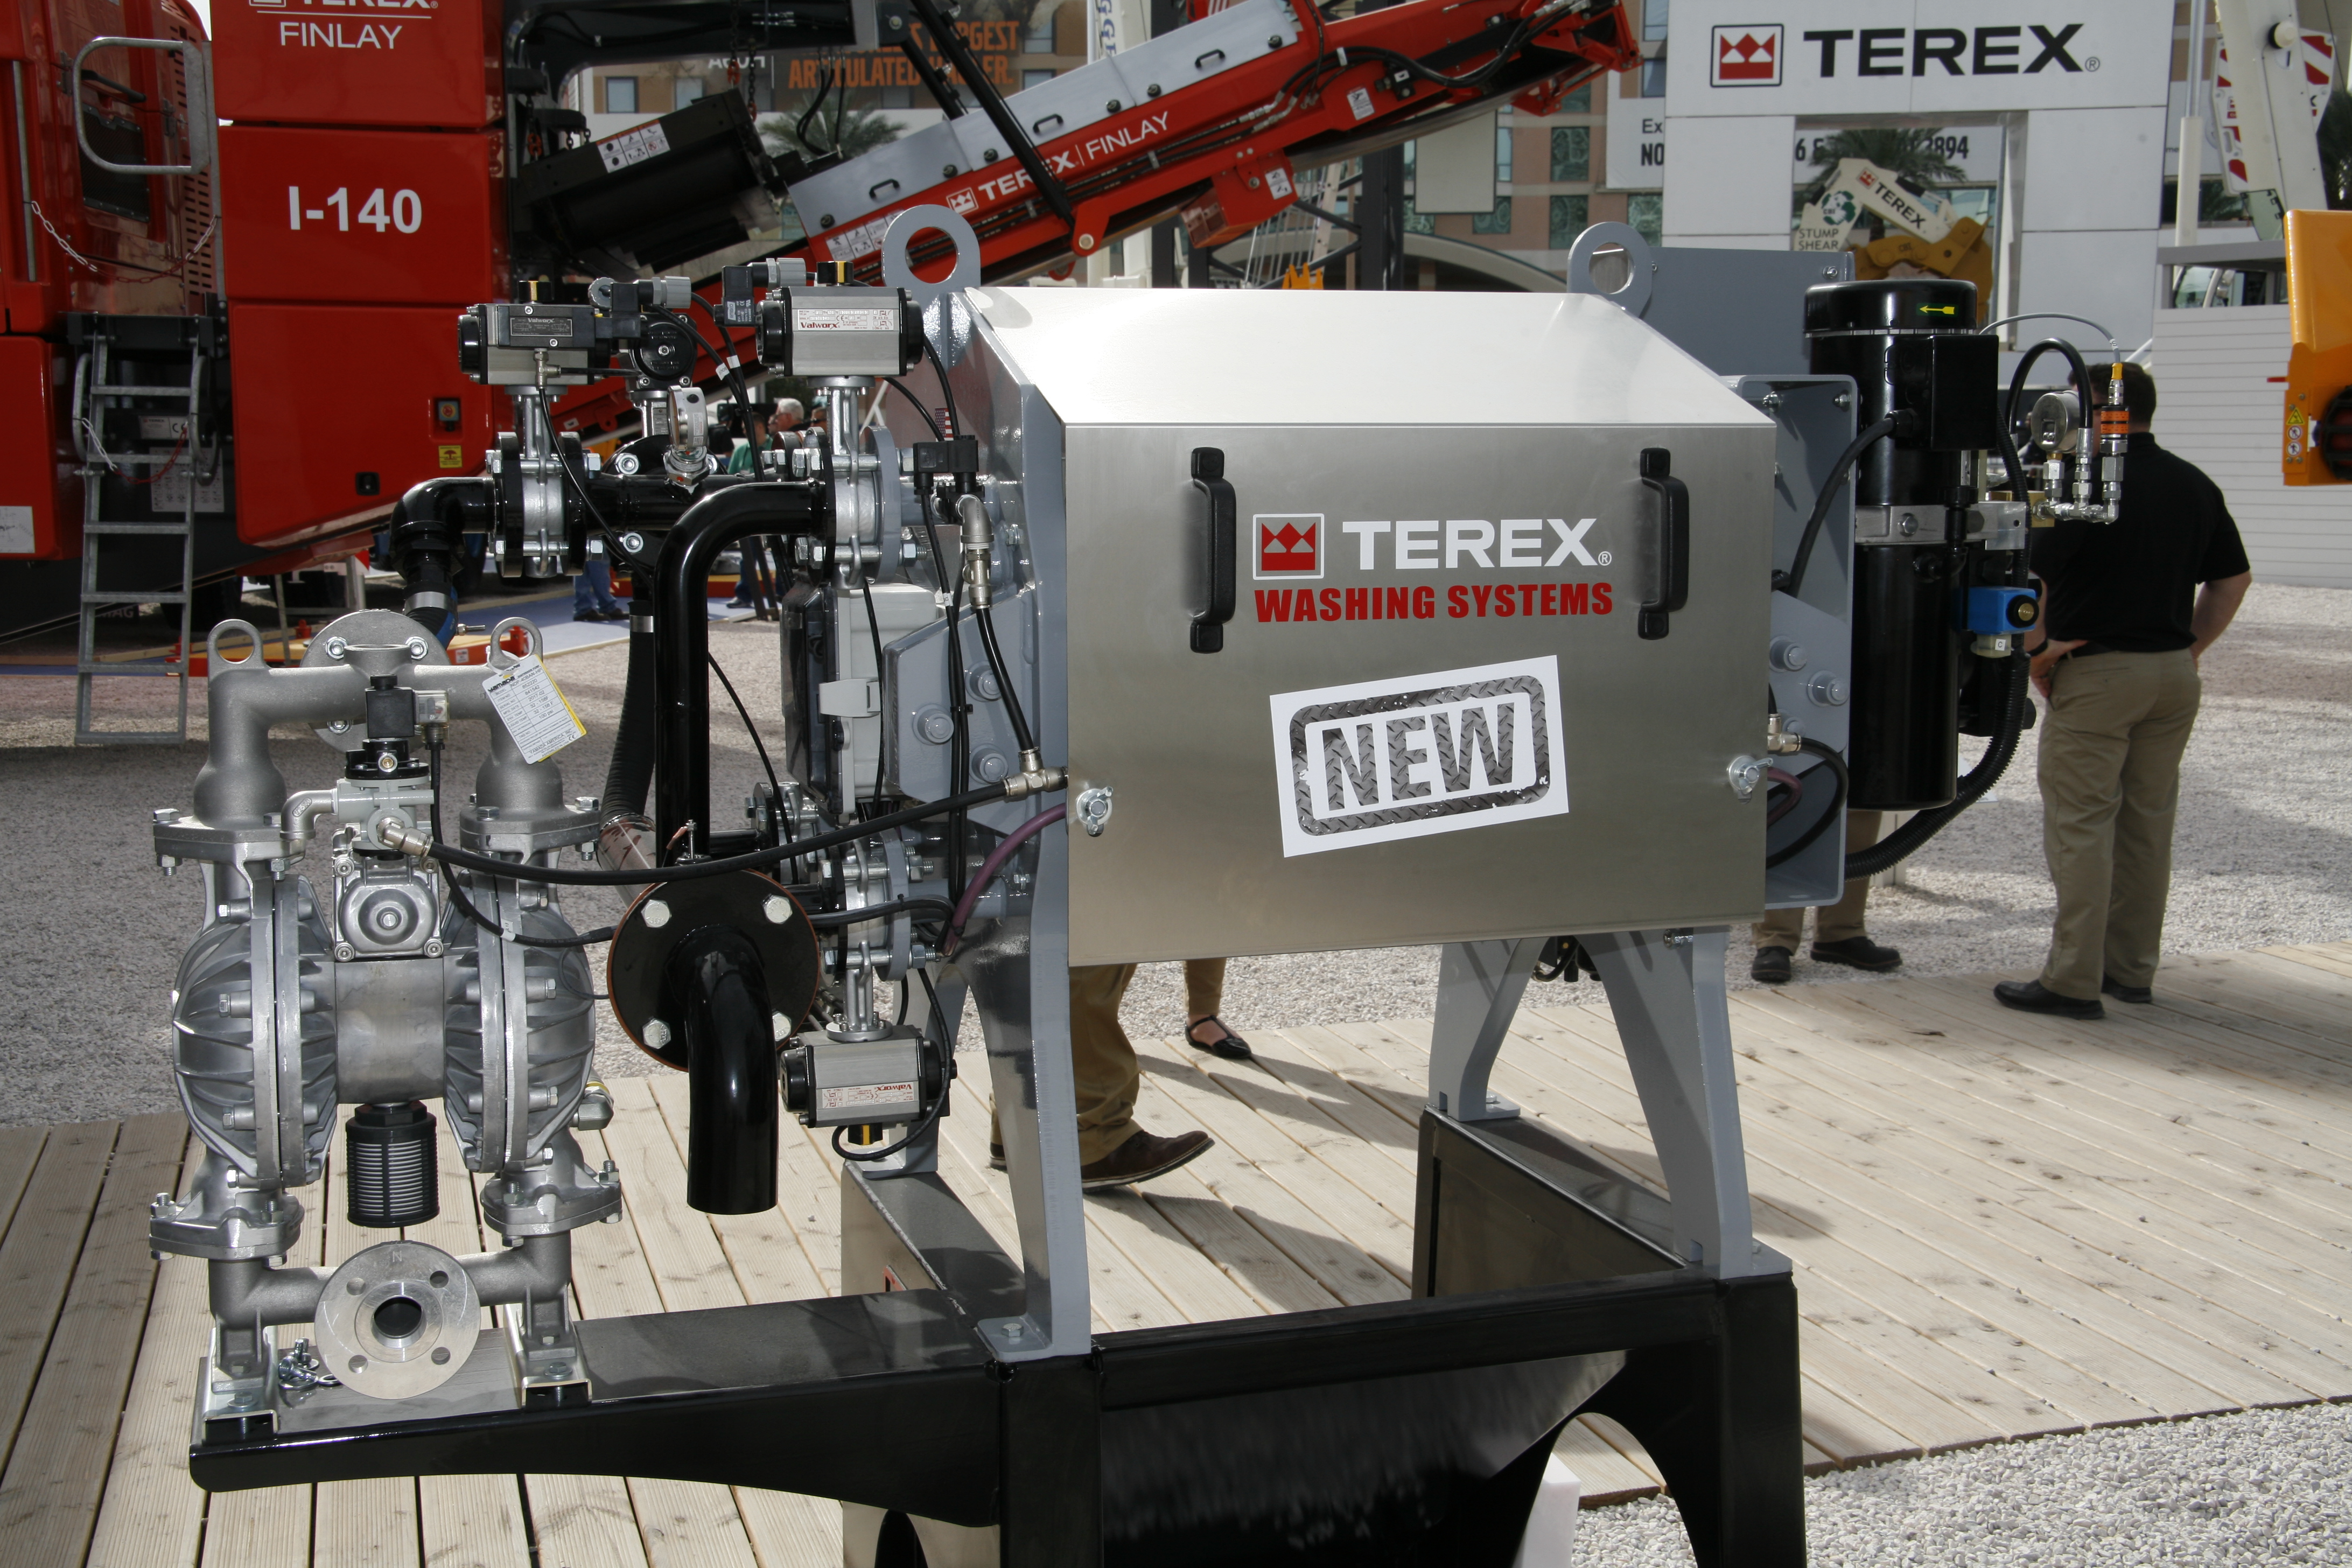 Everything is AquaClear for Terex Washing Systems